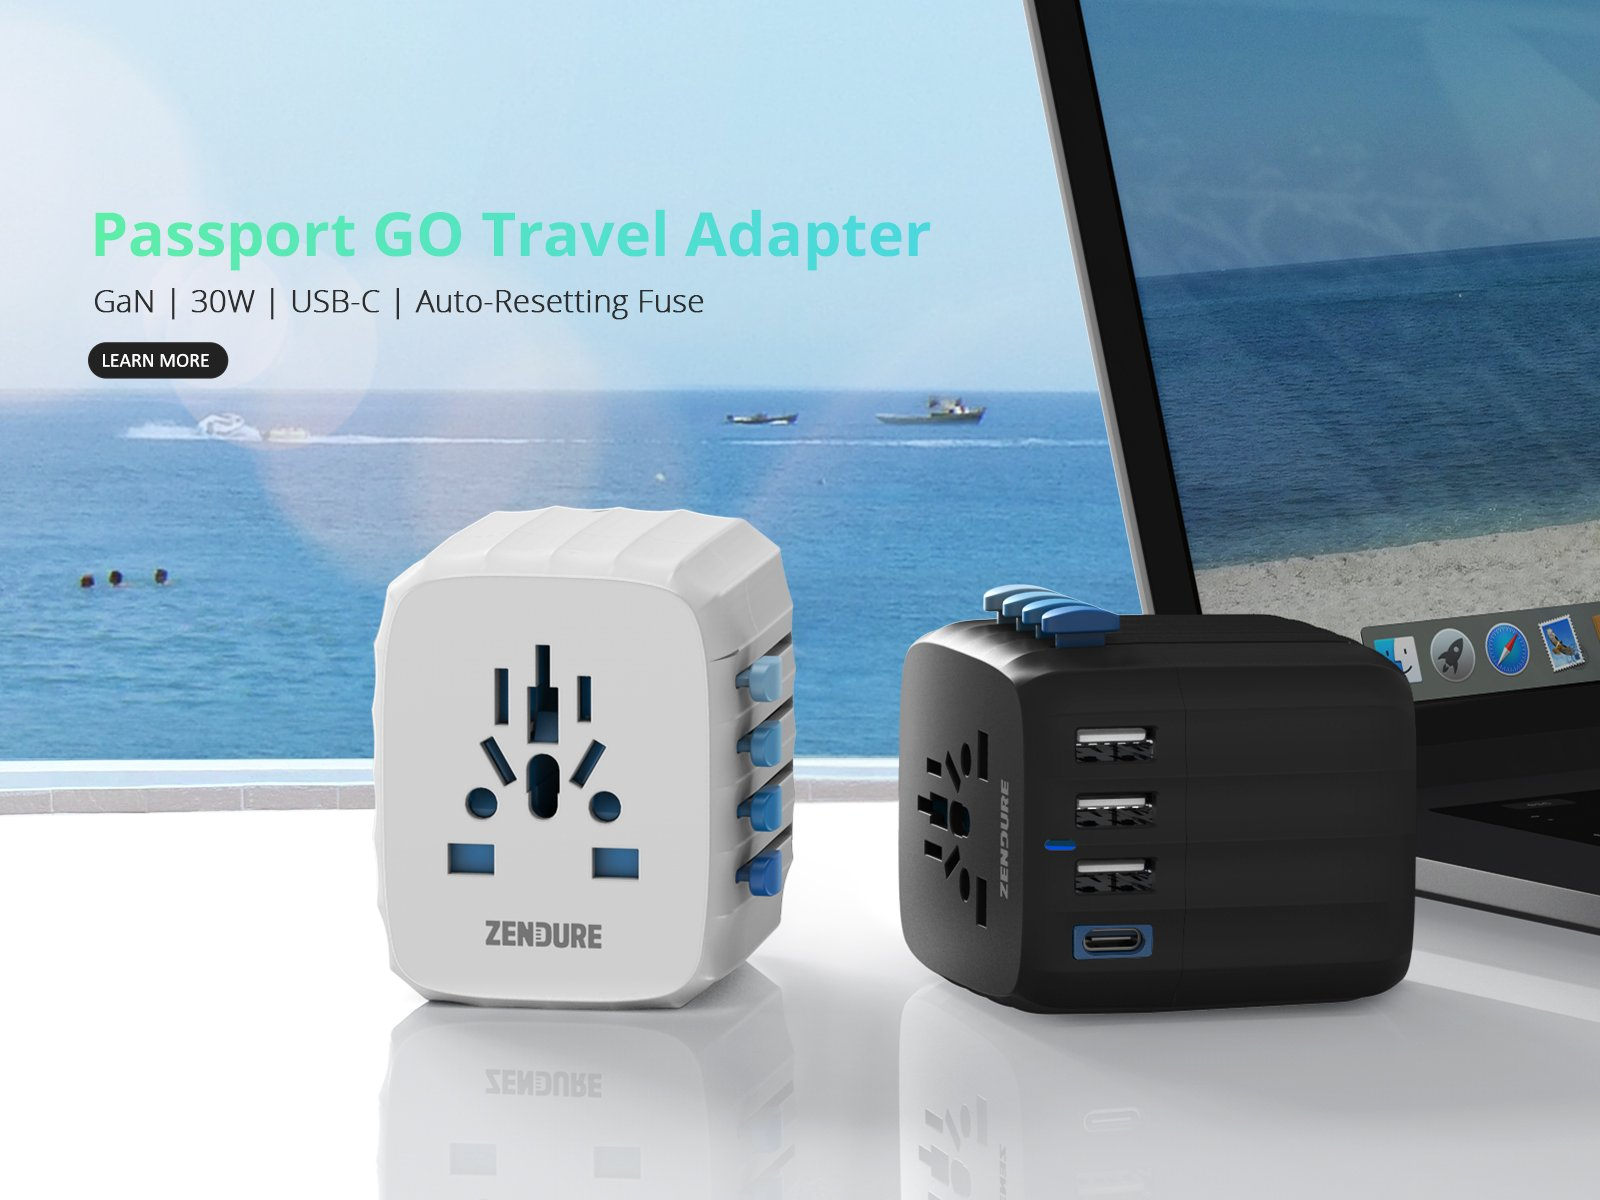 Passport GO Travel Adapter